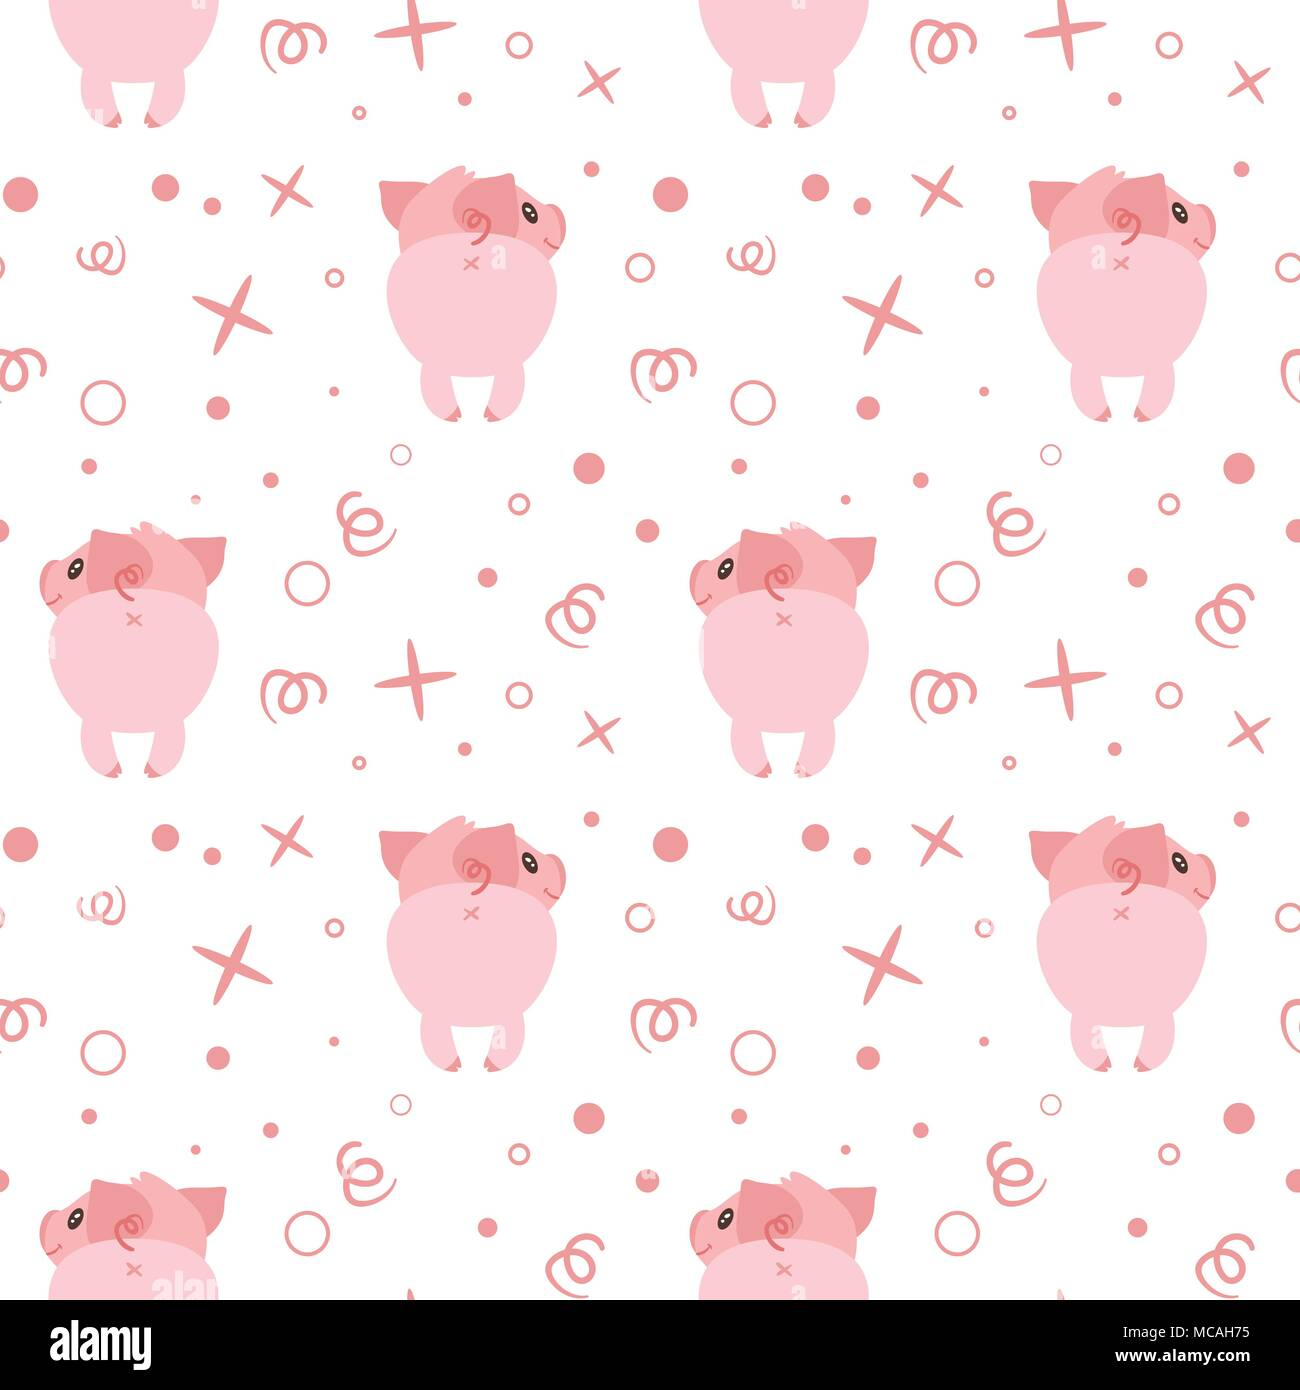 Cute Pink Pig Wallpaper Vector Cartoon Style Seamless Pattern With Cute Pigs